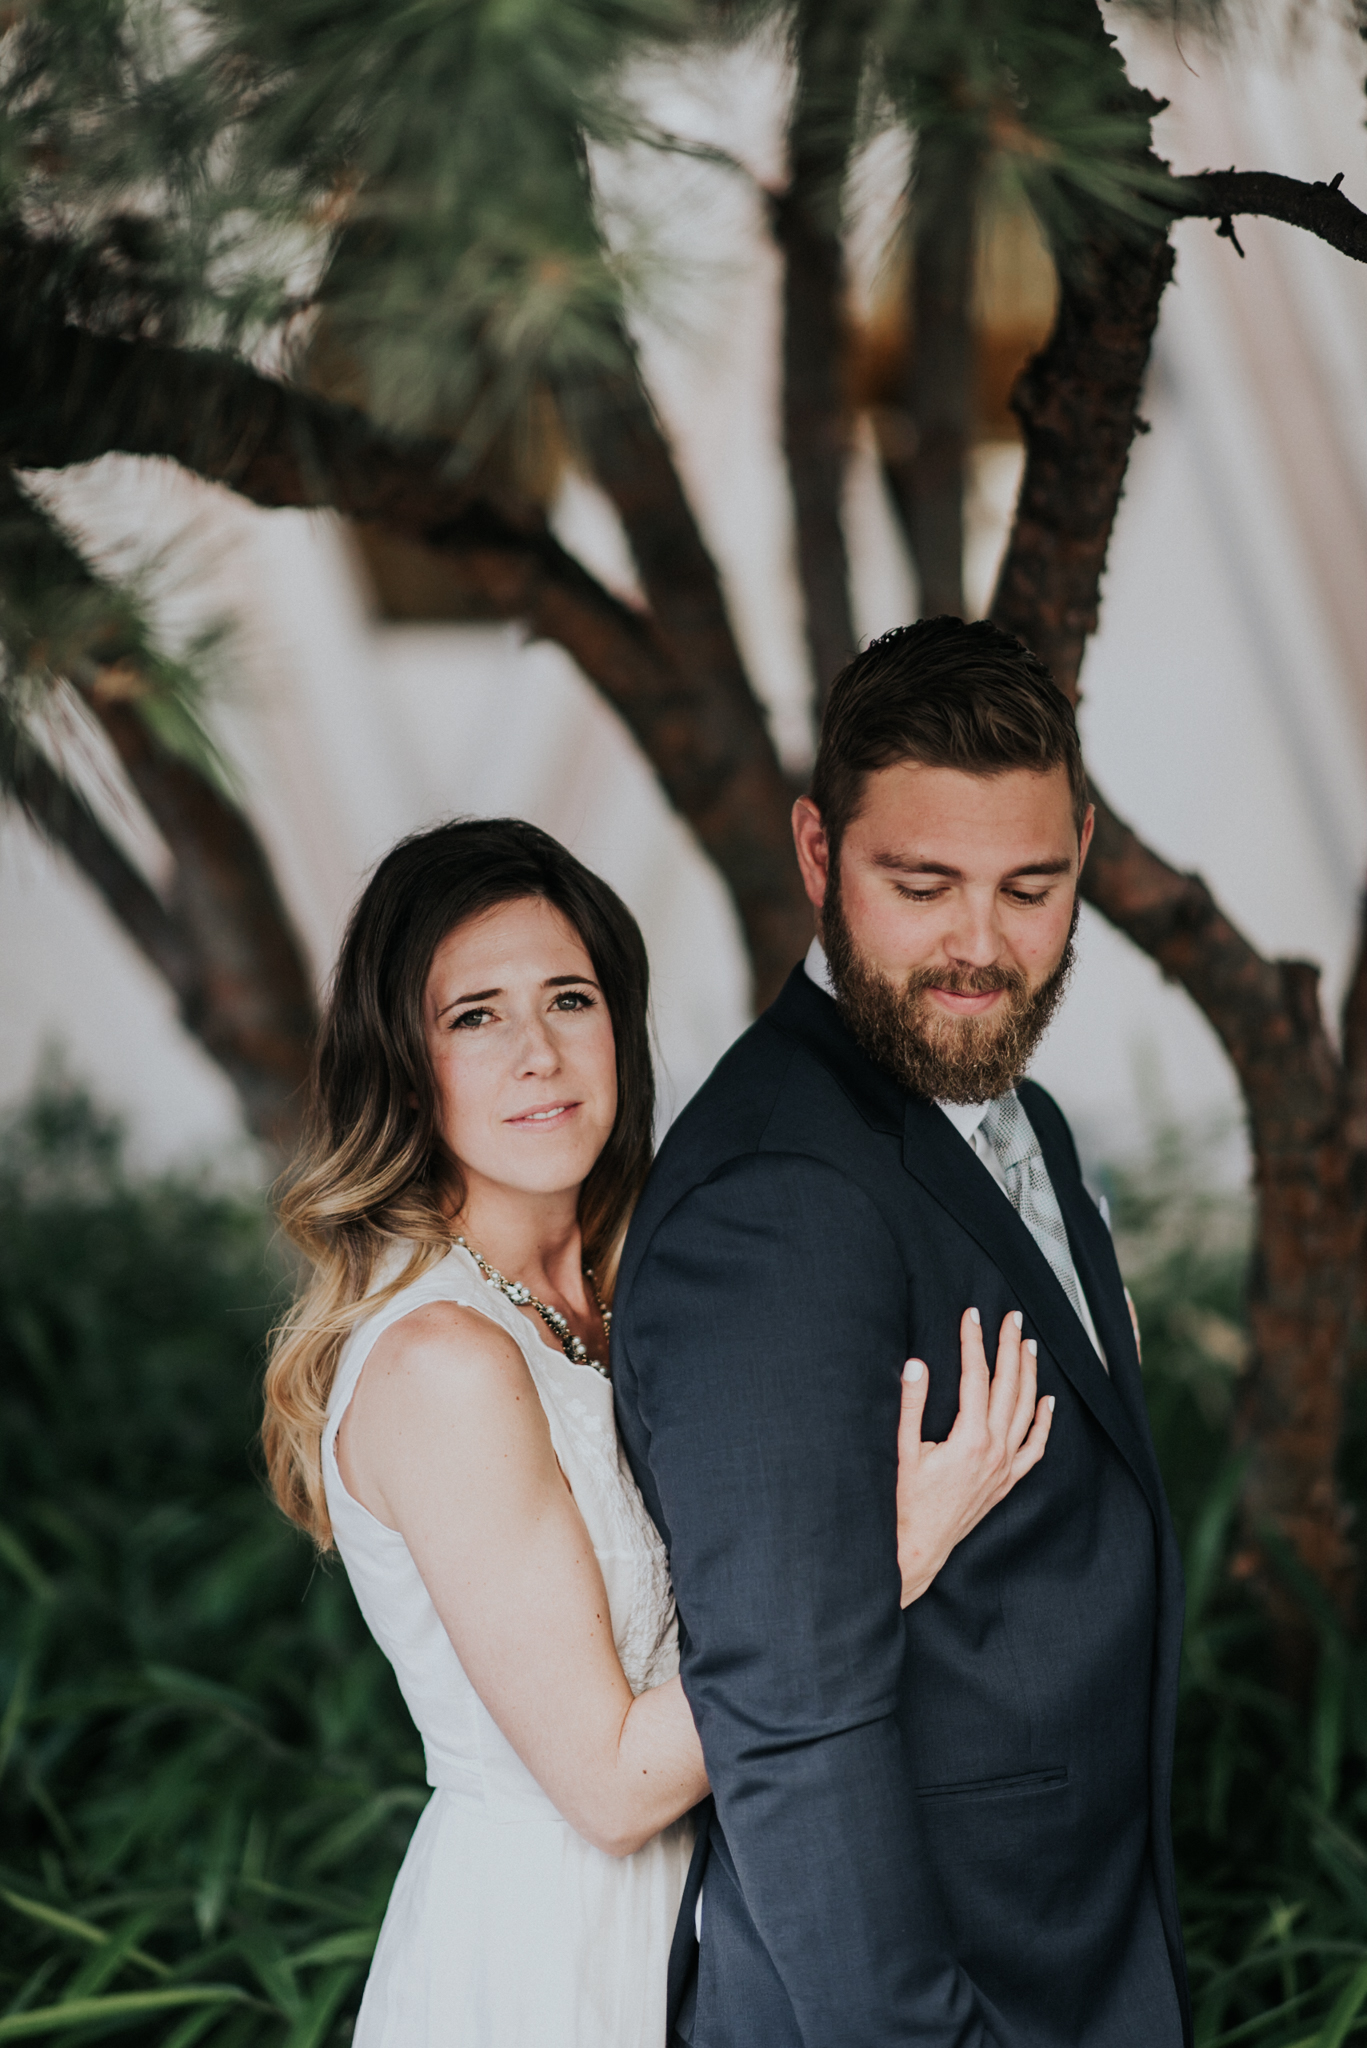 Courthouse Elopement In Downtown Seattle Washington | Taylor & David